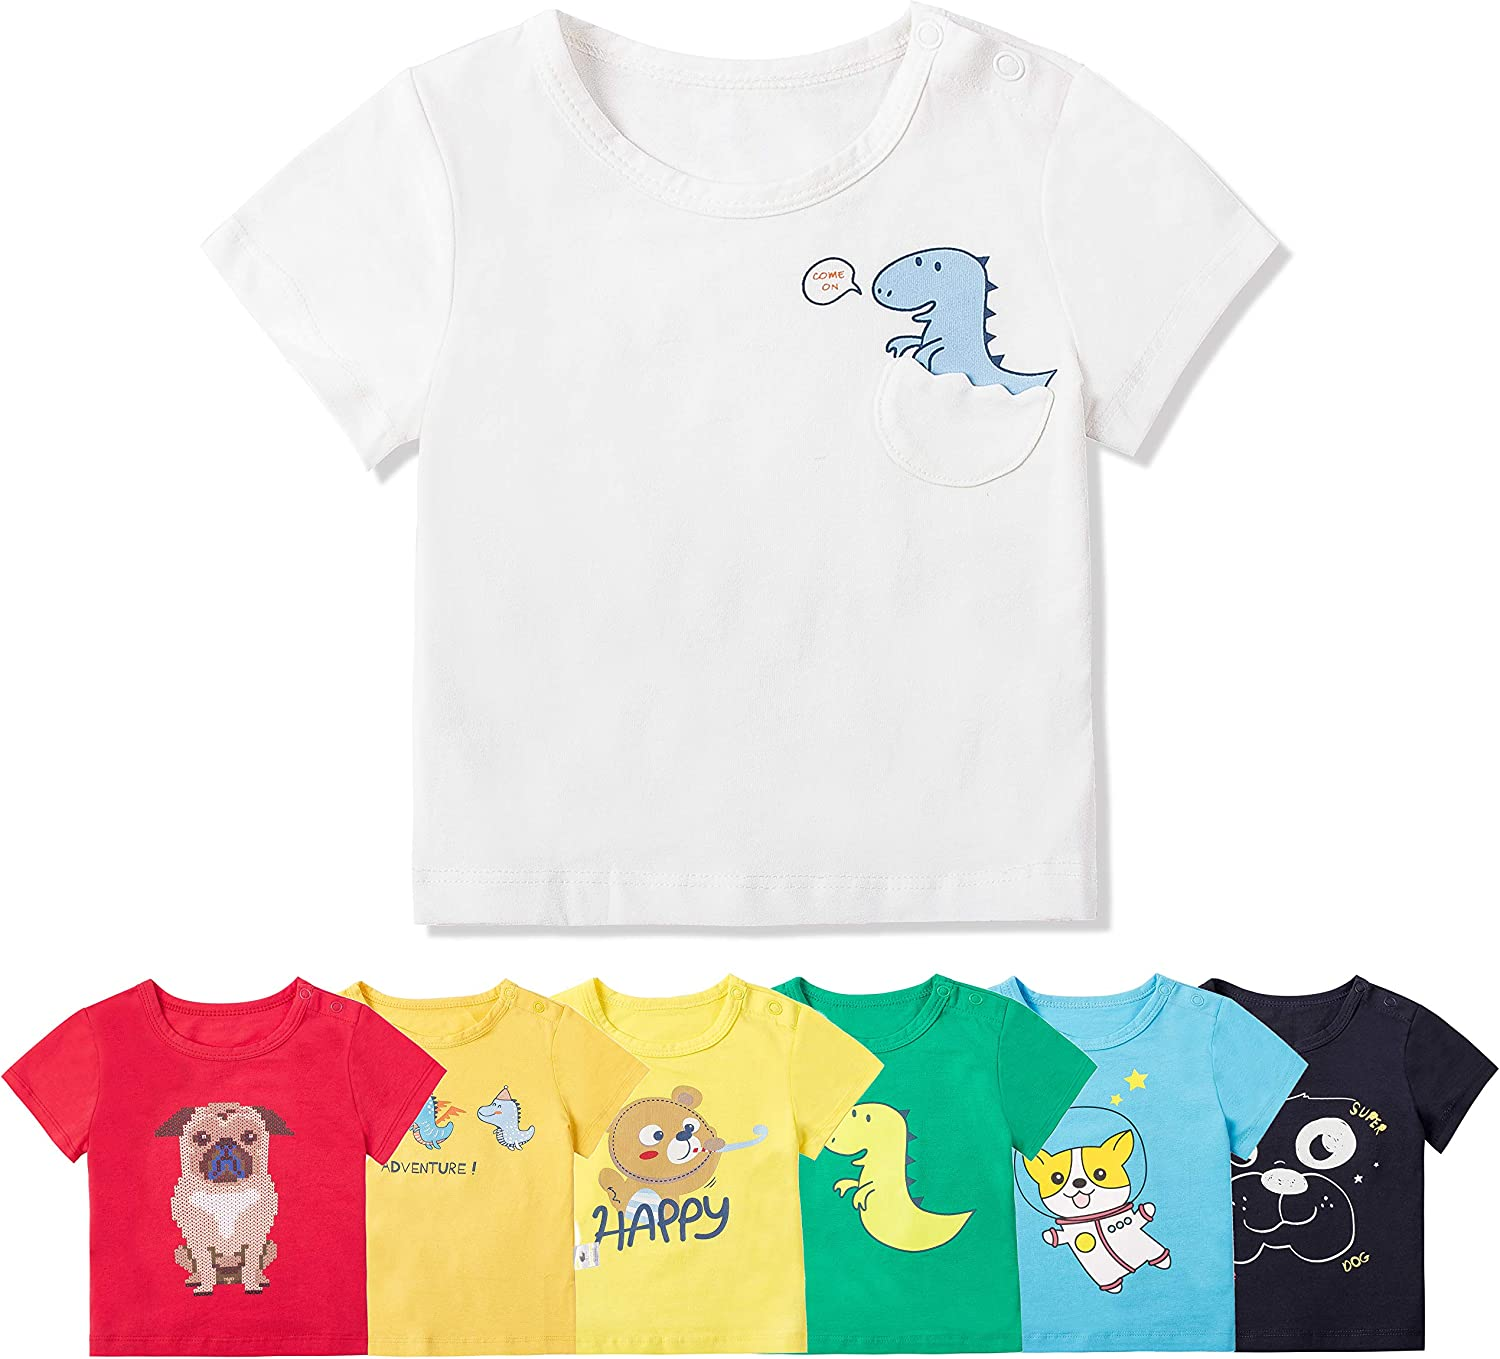 COTTON FAIRY Baby Boy 7 Pack Short Sleeve Crew Tees T-Shirts